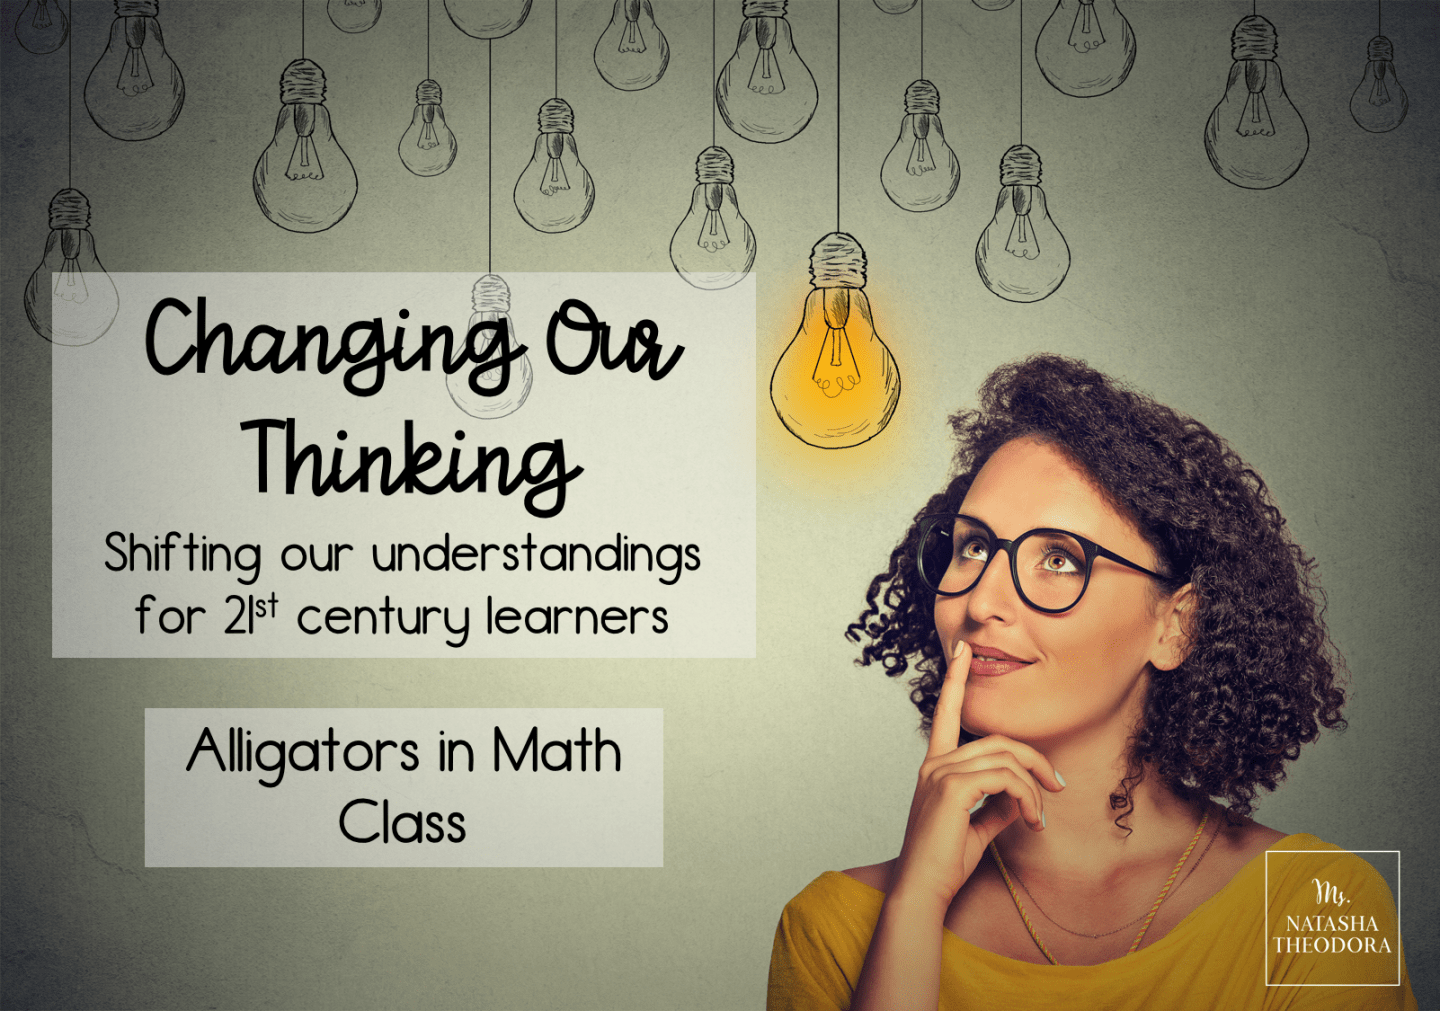 Changing Our Thinking: Alligators in Math Class